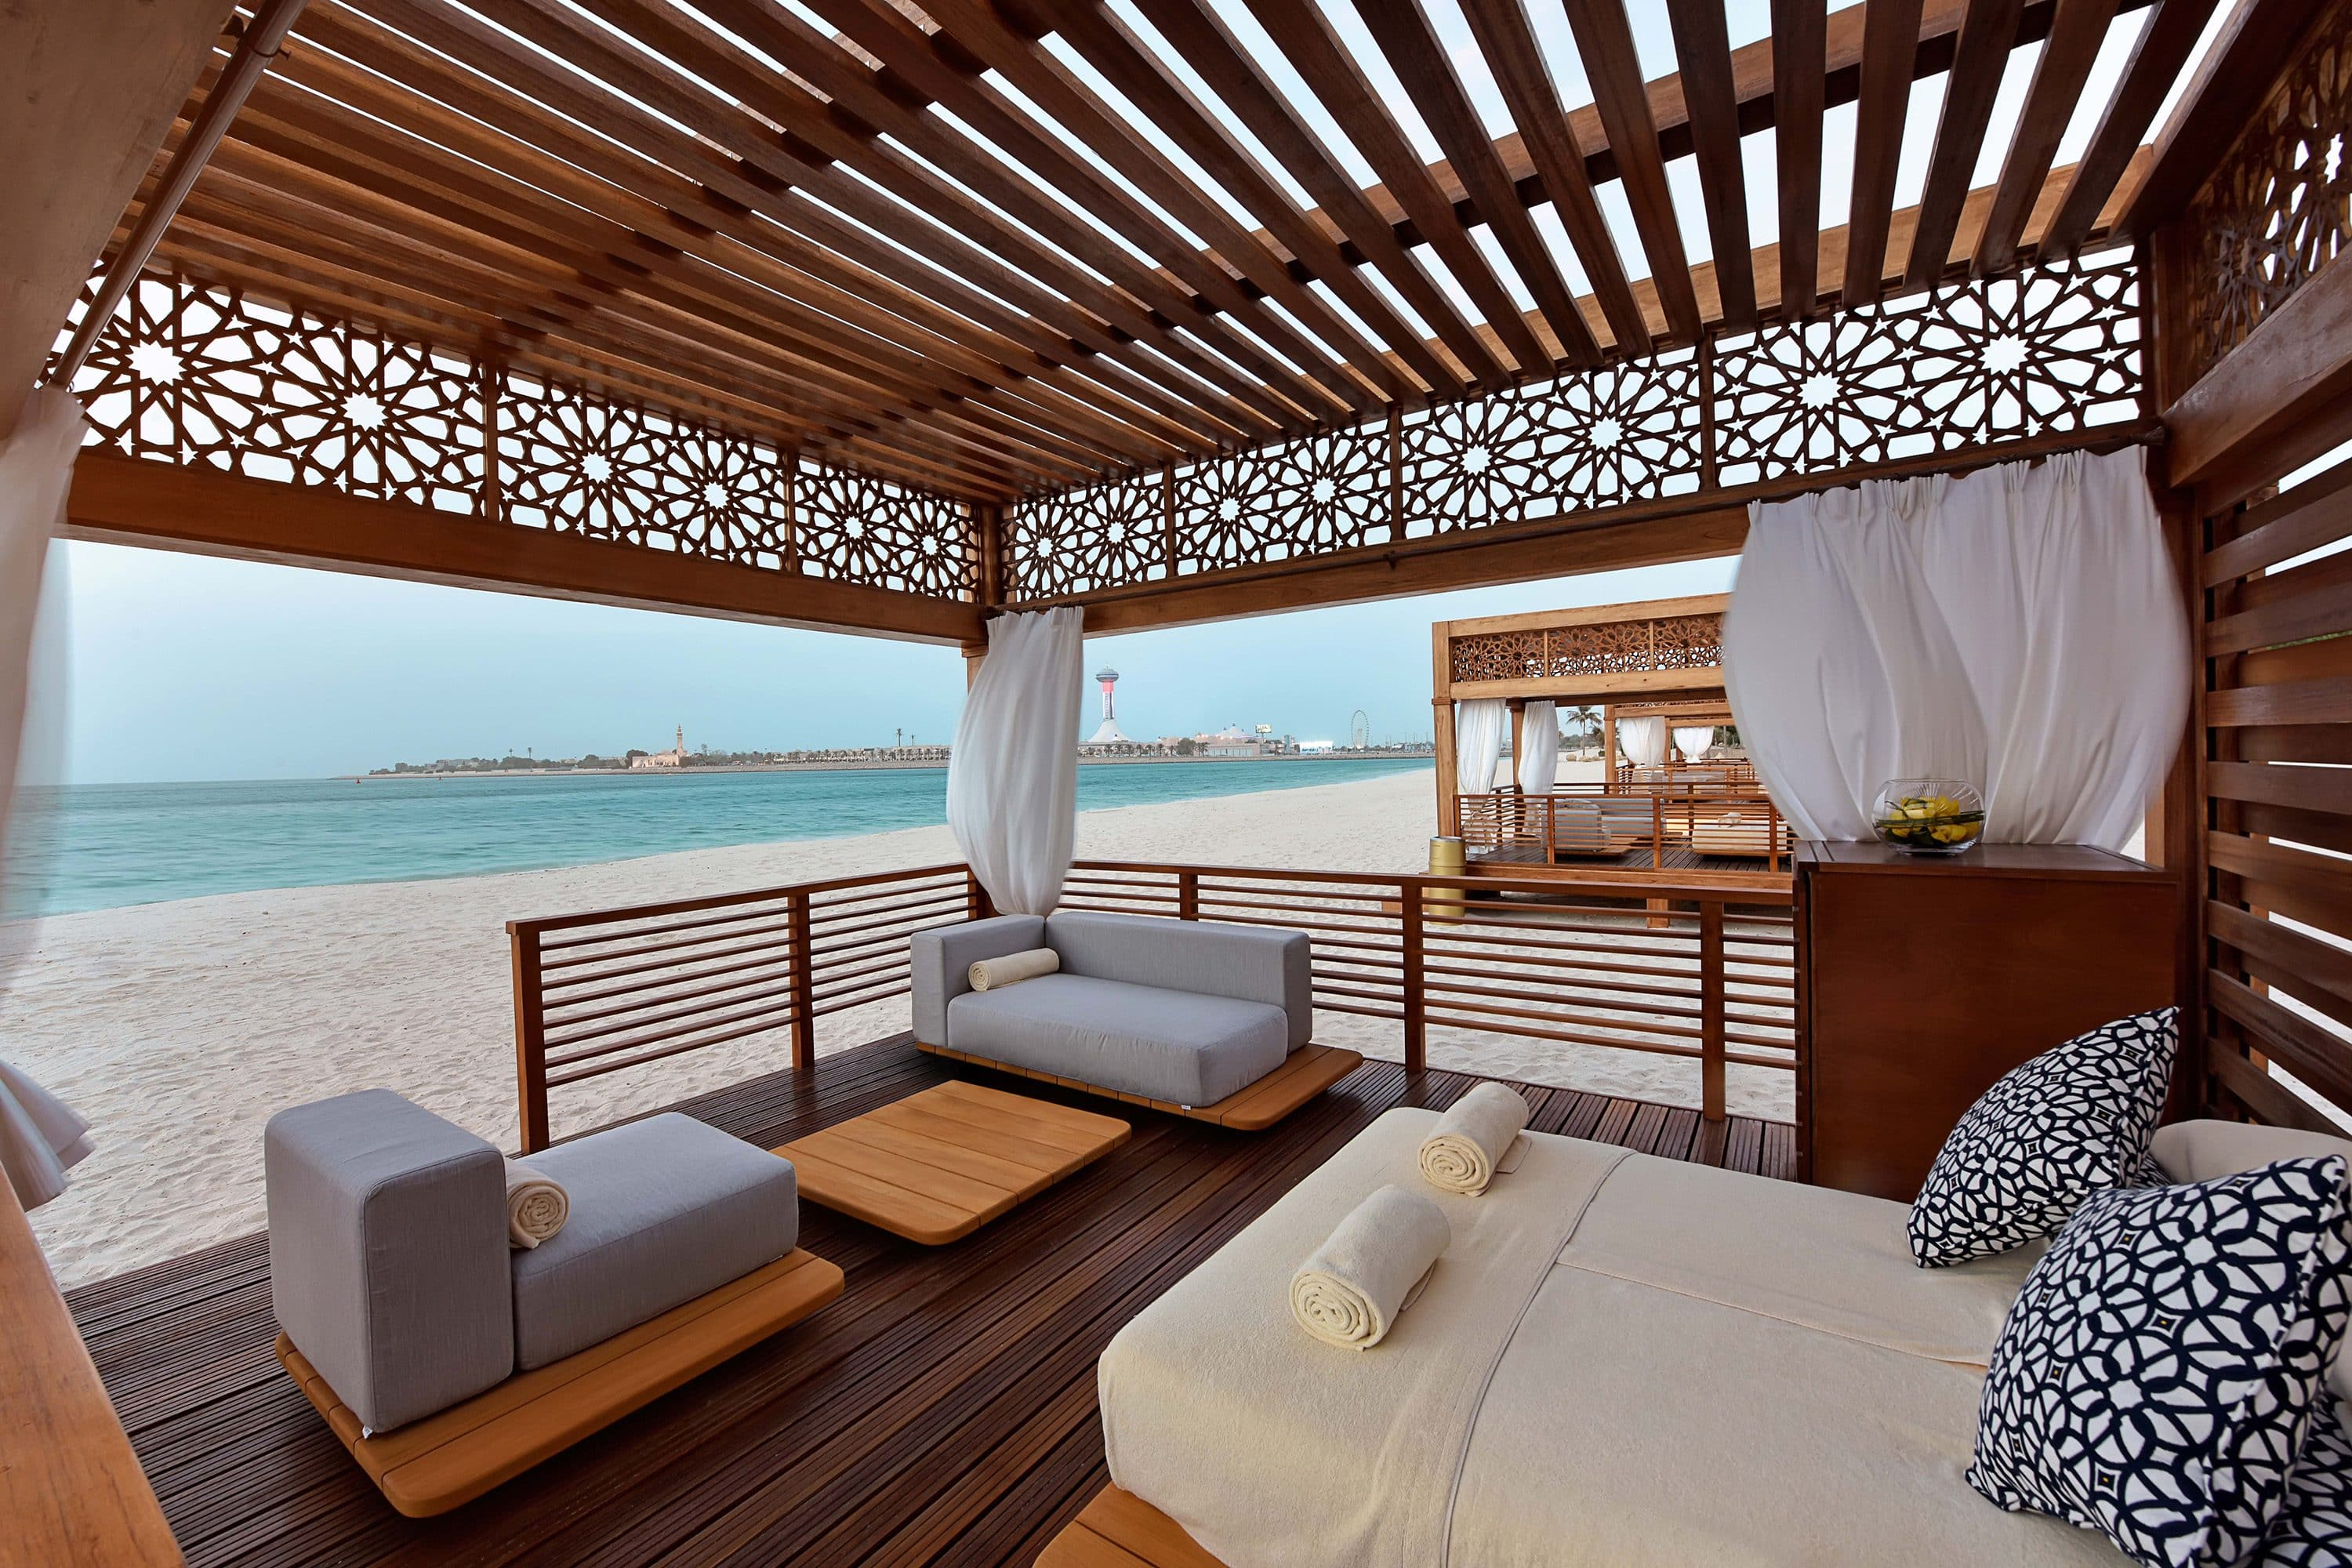 Beach cabana at Emirates Palace, Abu Dhabi